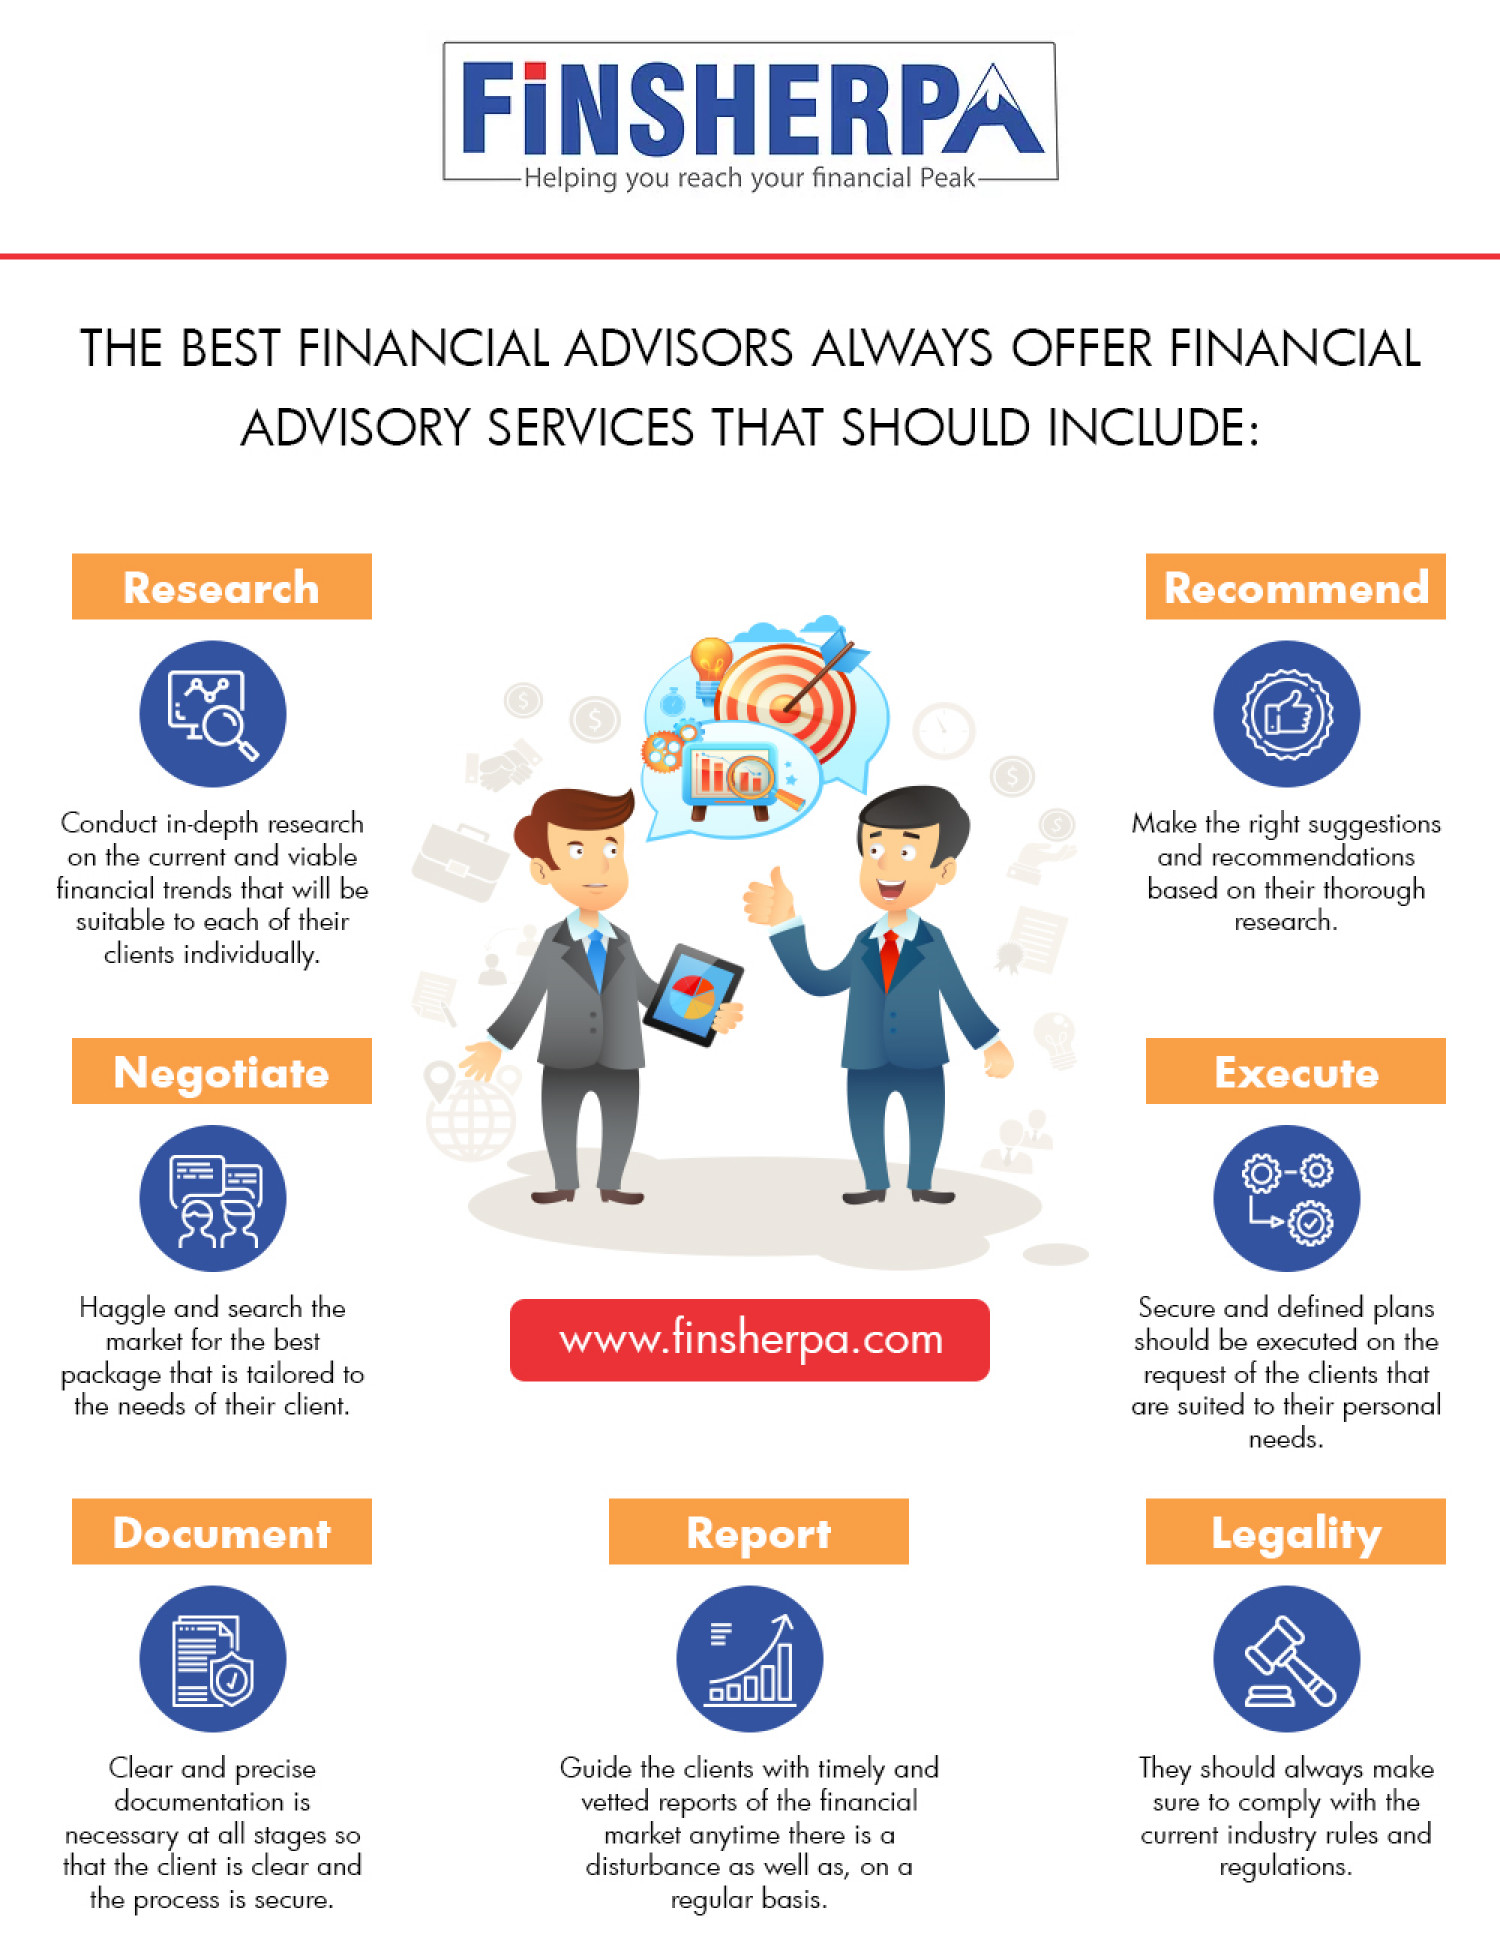 THE BEST FINANCIAL ADVISORS ALWAYS OFFER FINANCIAL ADVISORY SERVICES THAT SHOULD INCLUDE Infographic